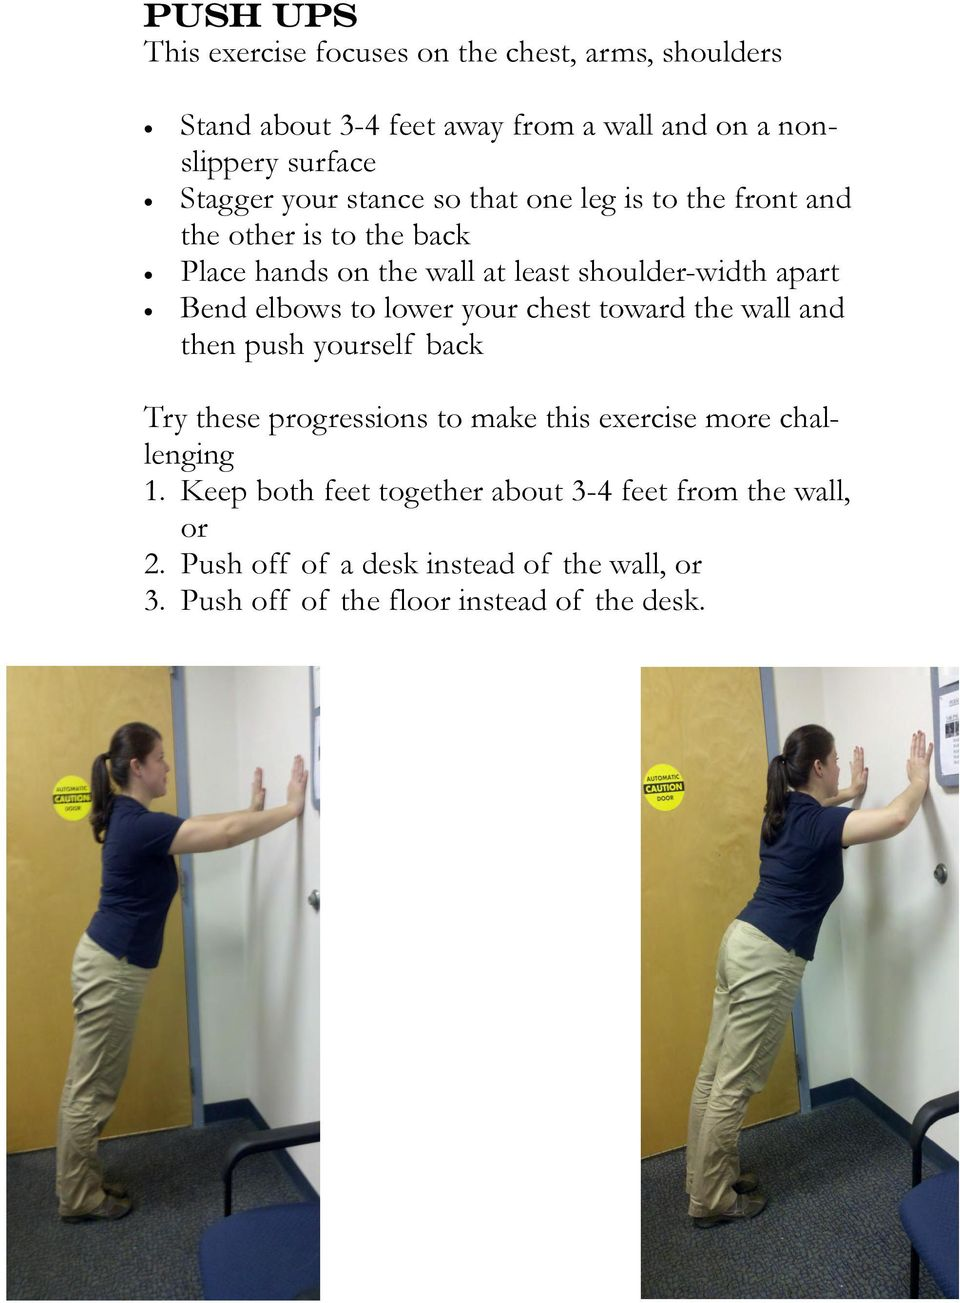 elbows to lower your chest toward the wall and then push yourself back Try these progressions to make this exercise more challenging 1.